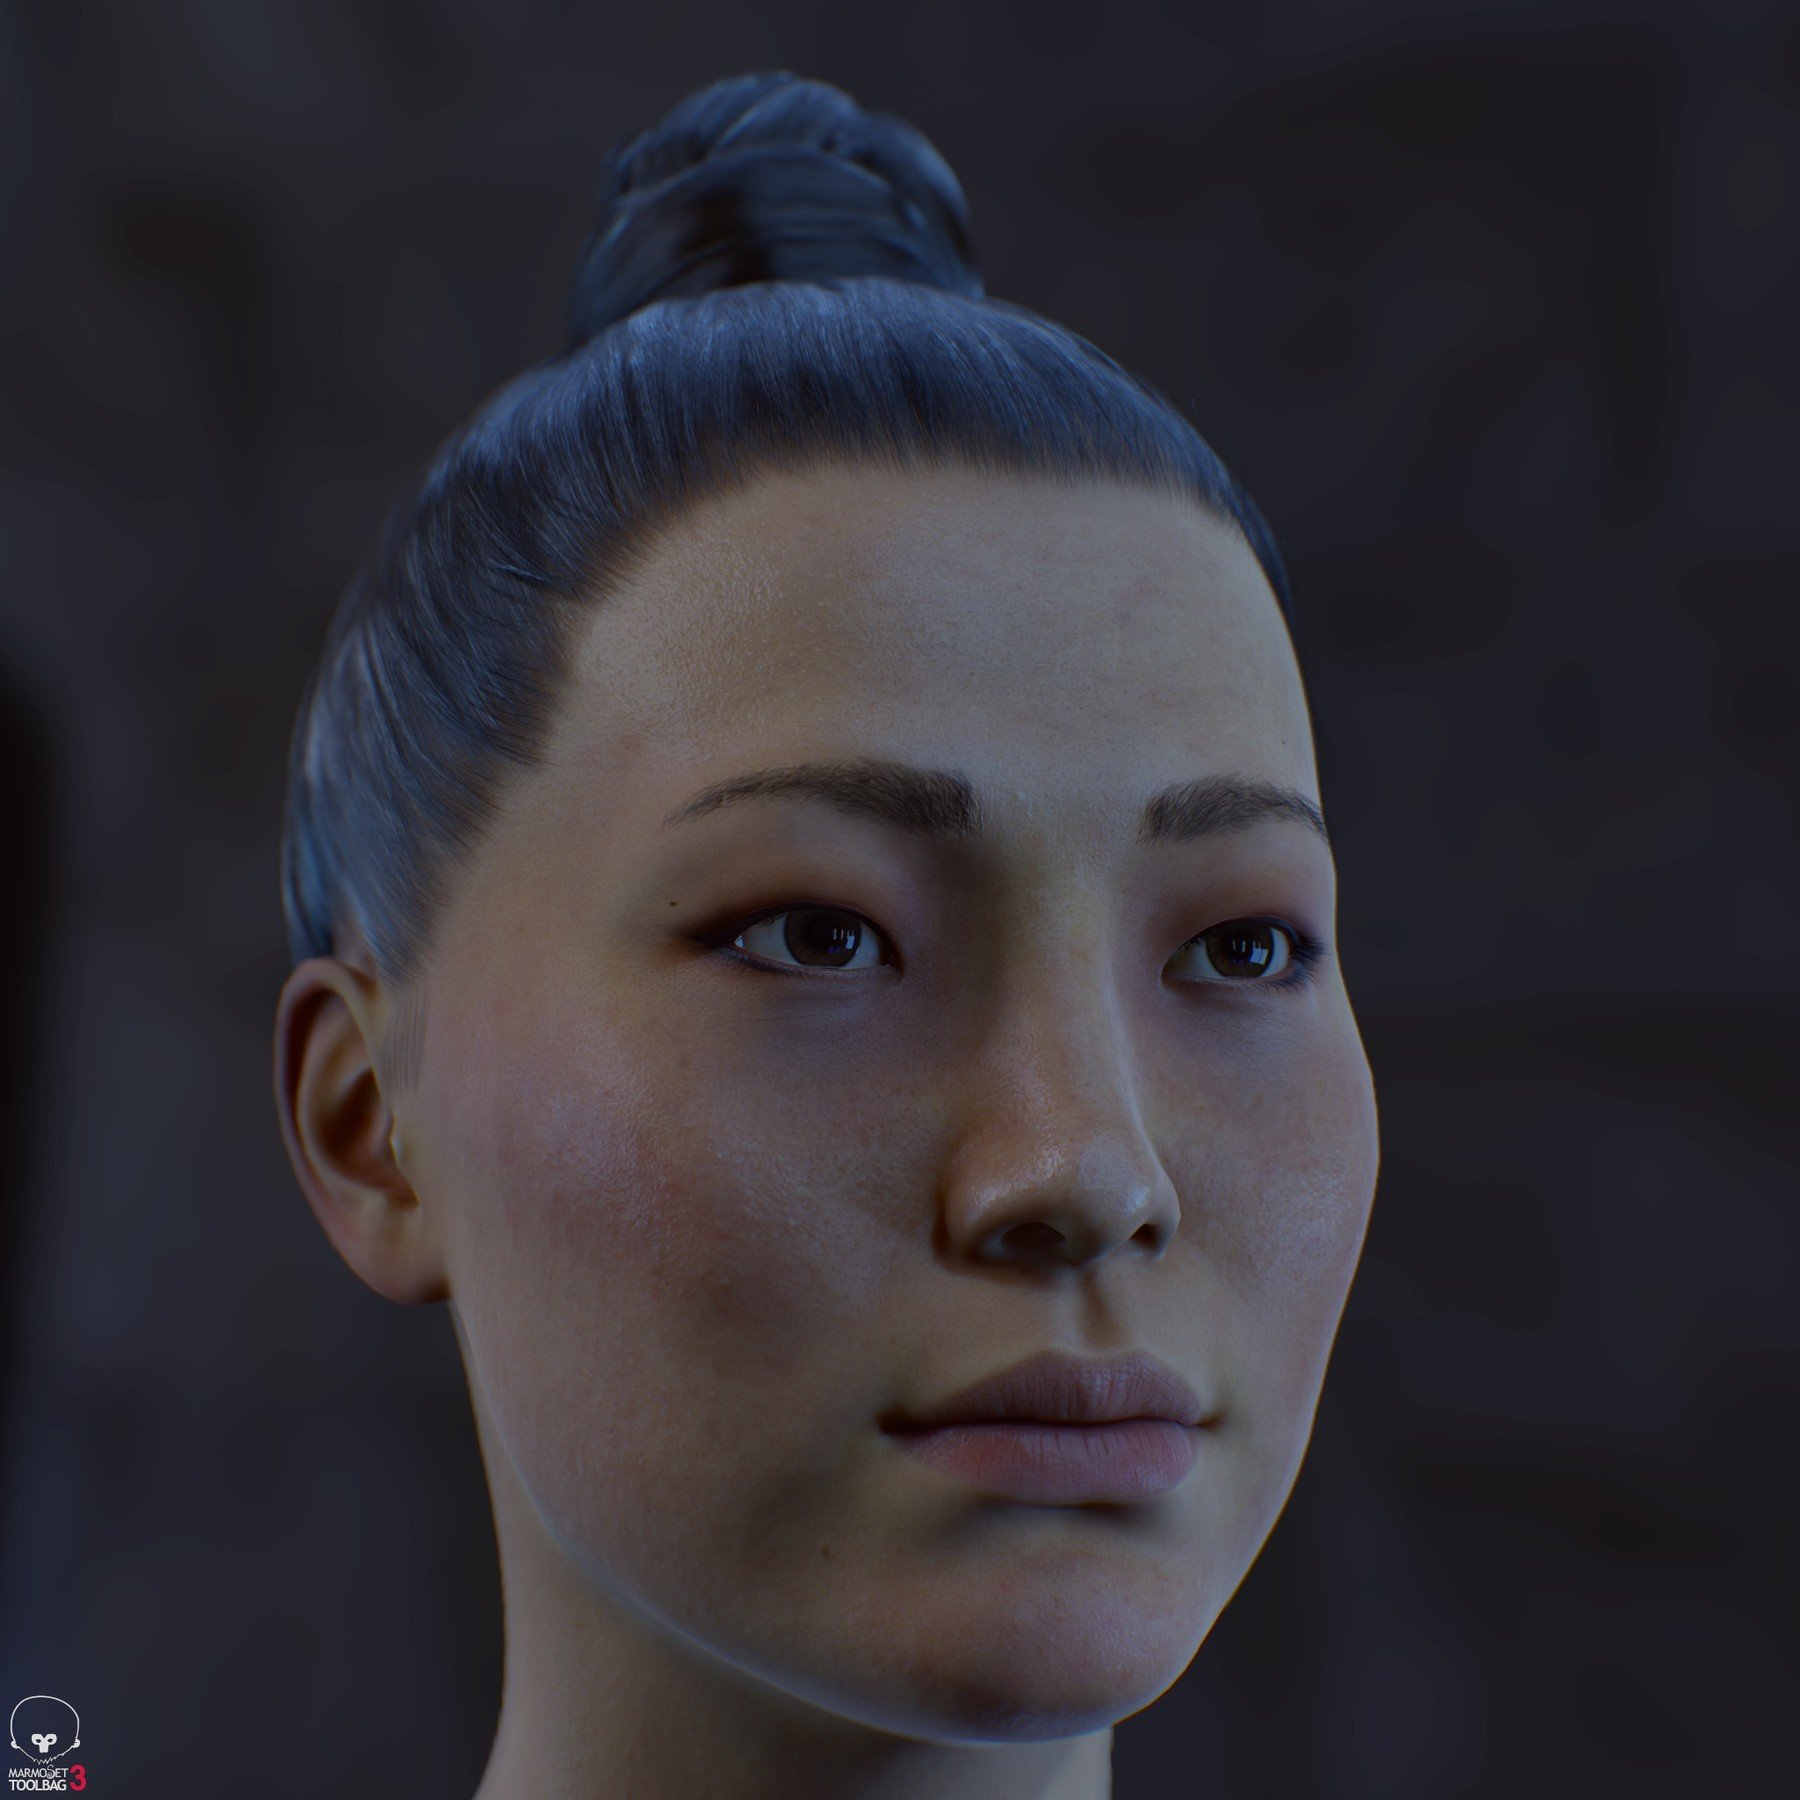 Averageasianfemale by alexlashko preview 27